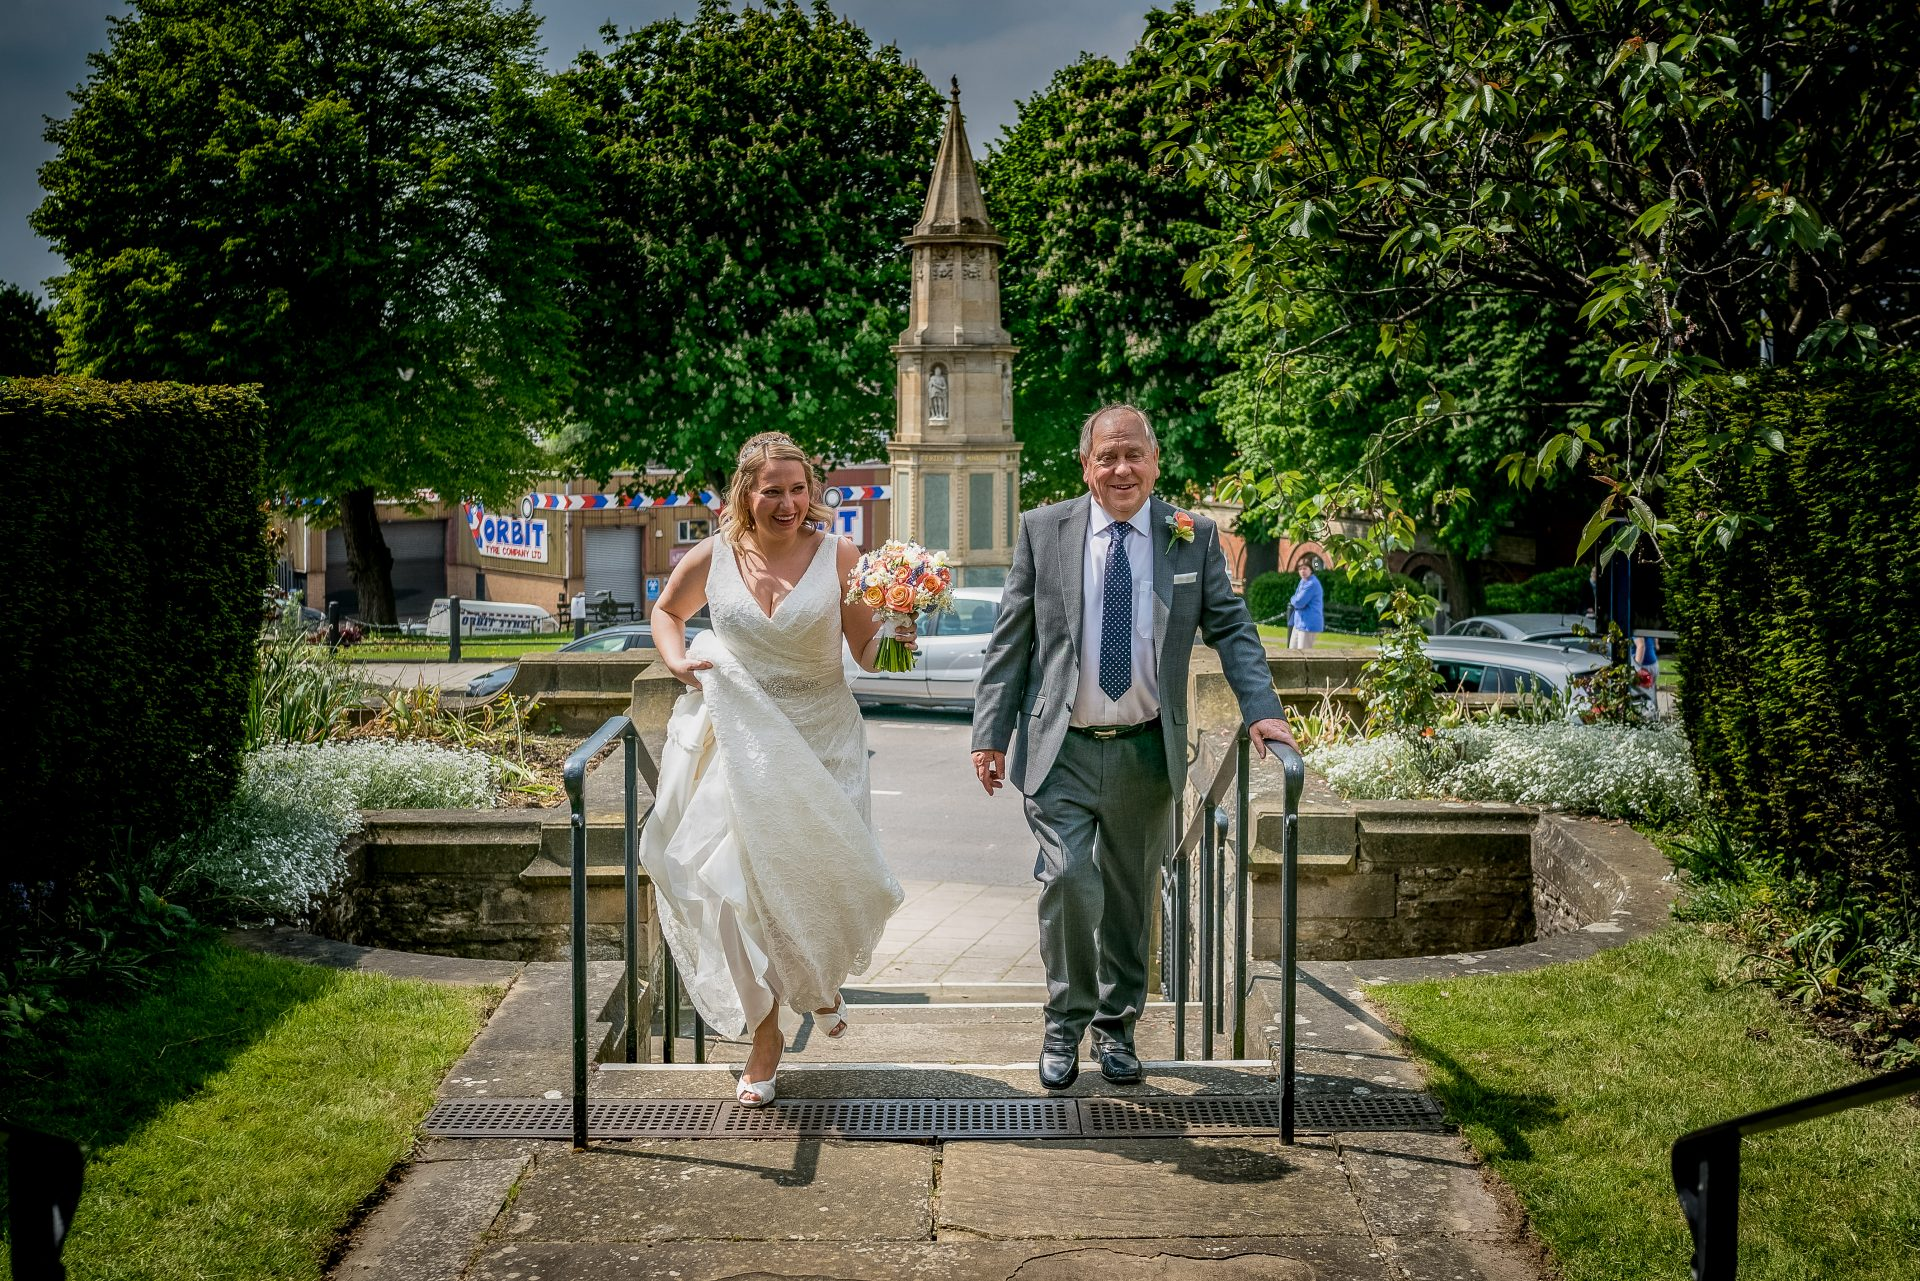 YFFUK Phil Endicott Newell St Mary Church Rushden Northamptonshire bride arriving at church with her father